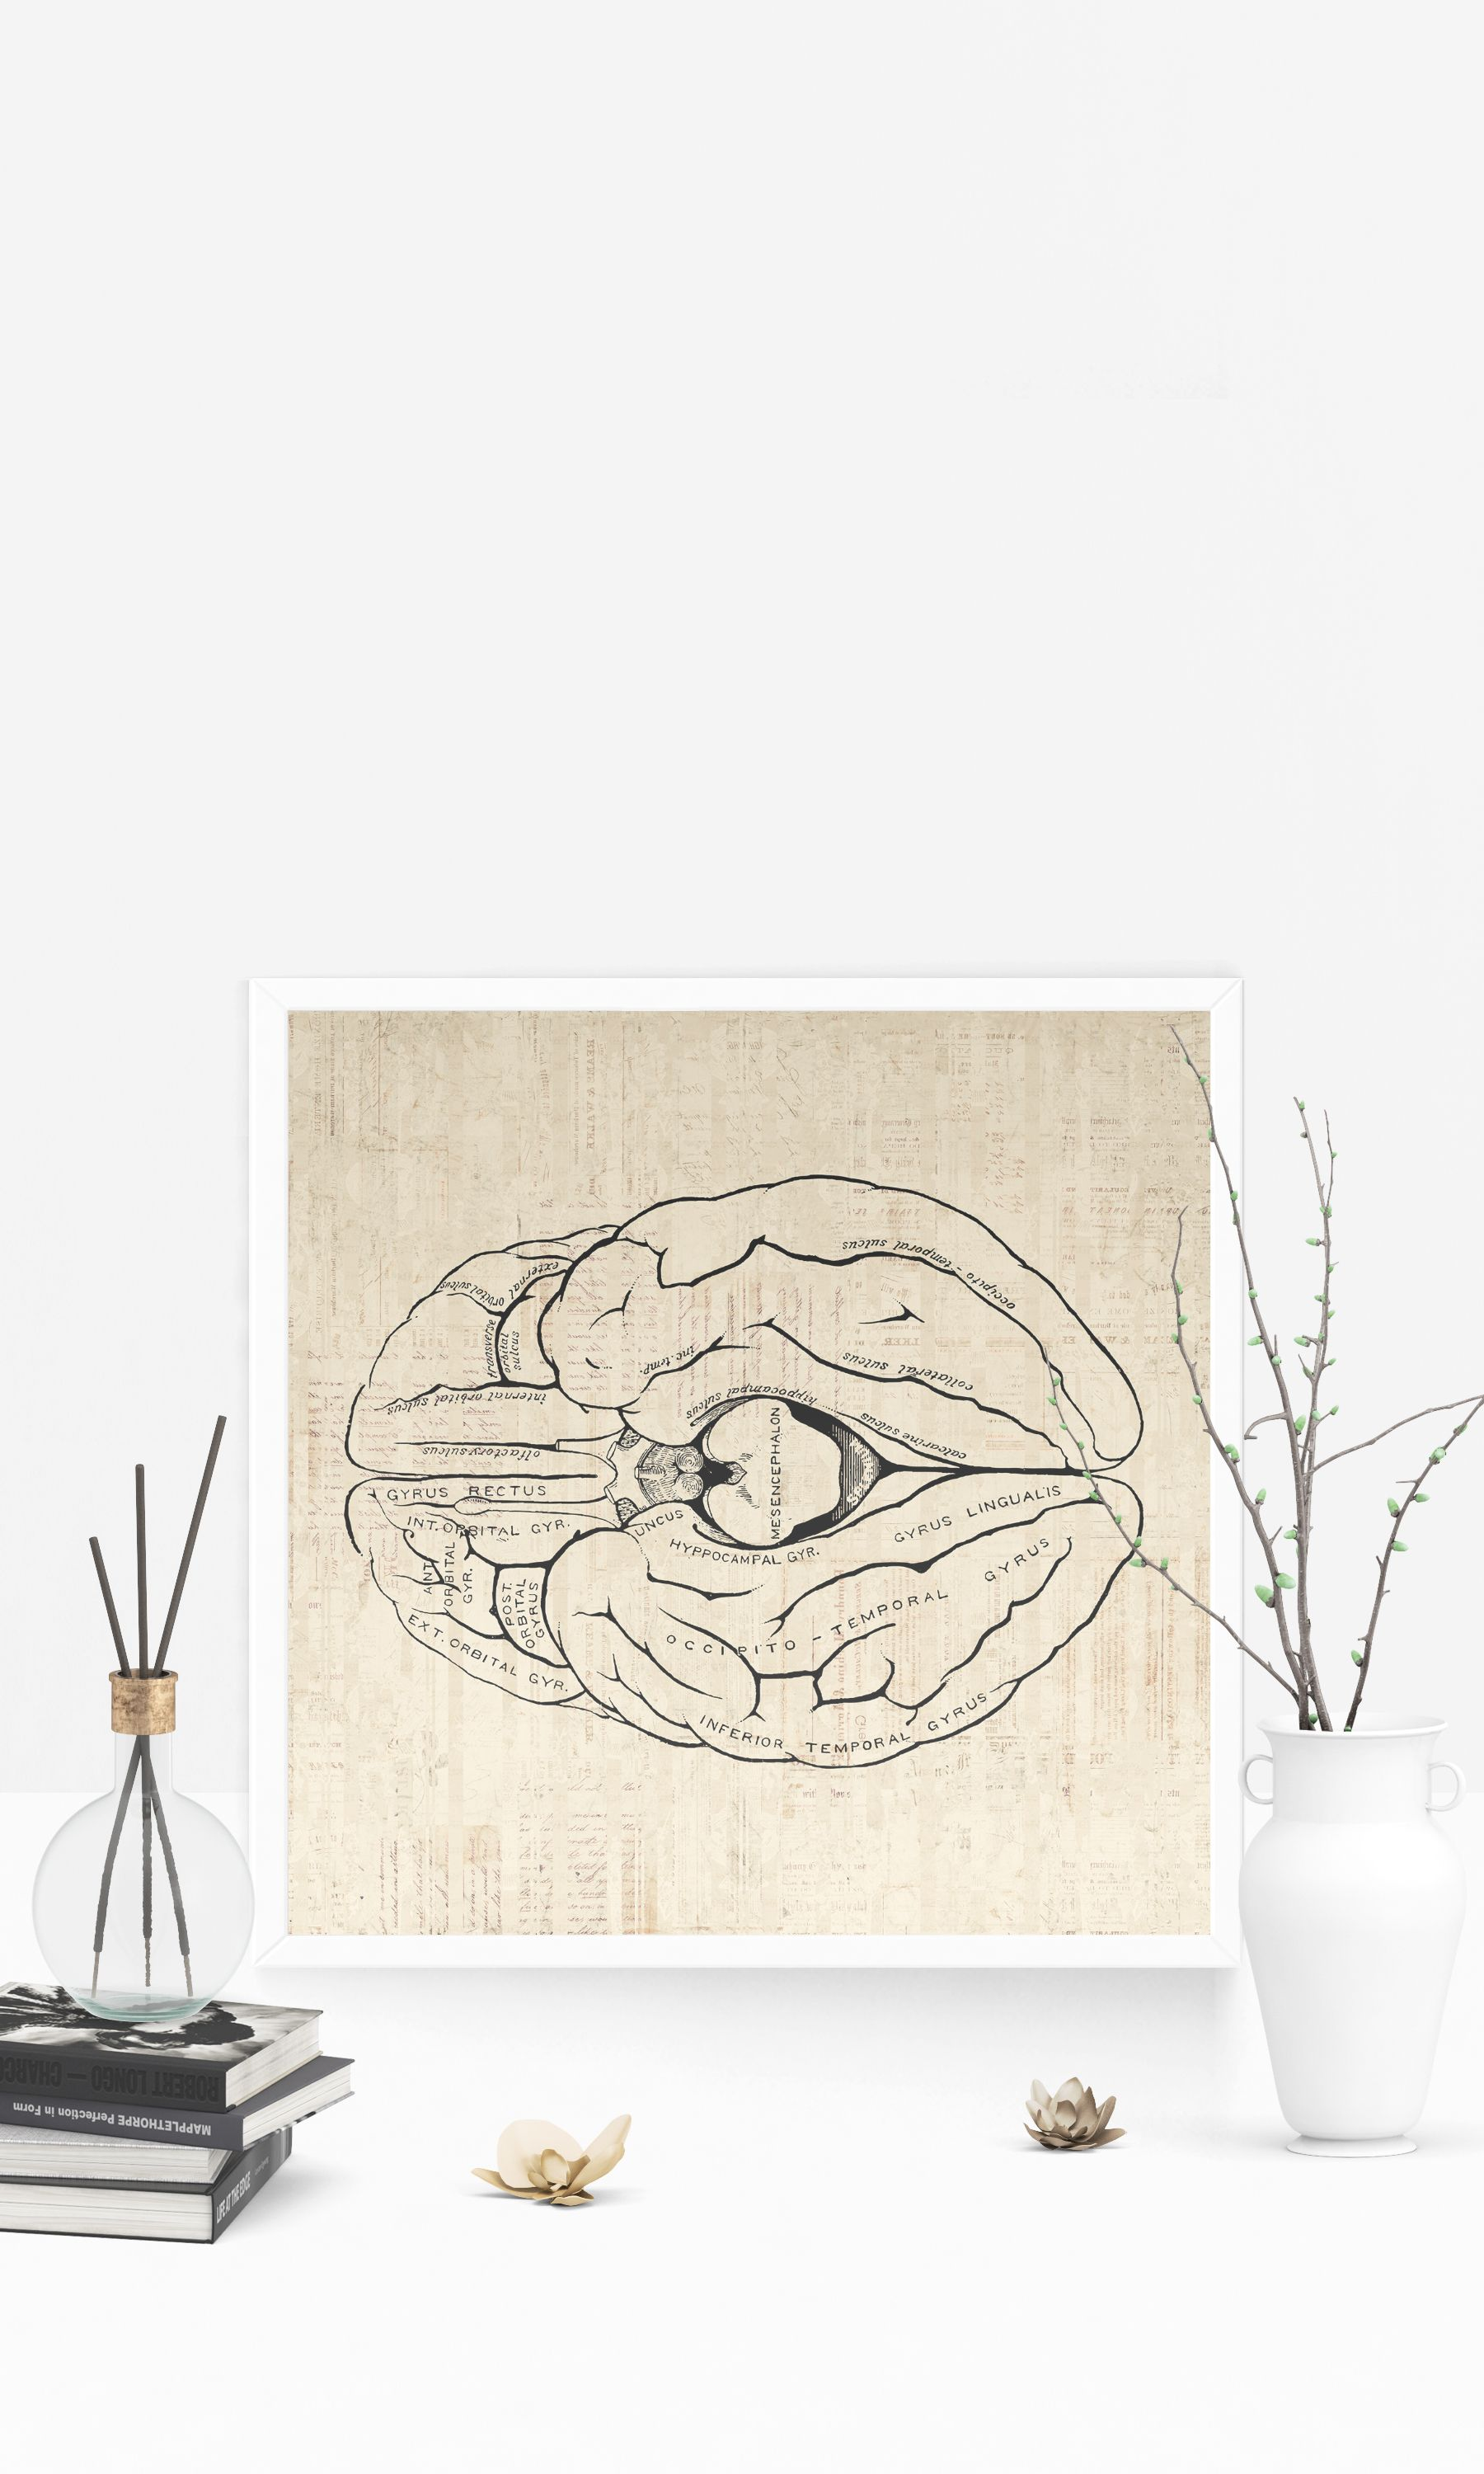 Clic Brain Diagram Wall Art Print Medical Anatomy Themed Home Decoration Antique Or Poster With A Vintage Script Paper Style Office Bedroom